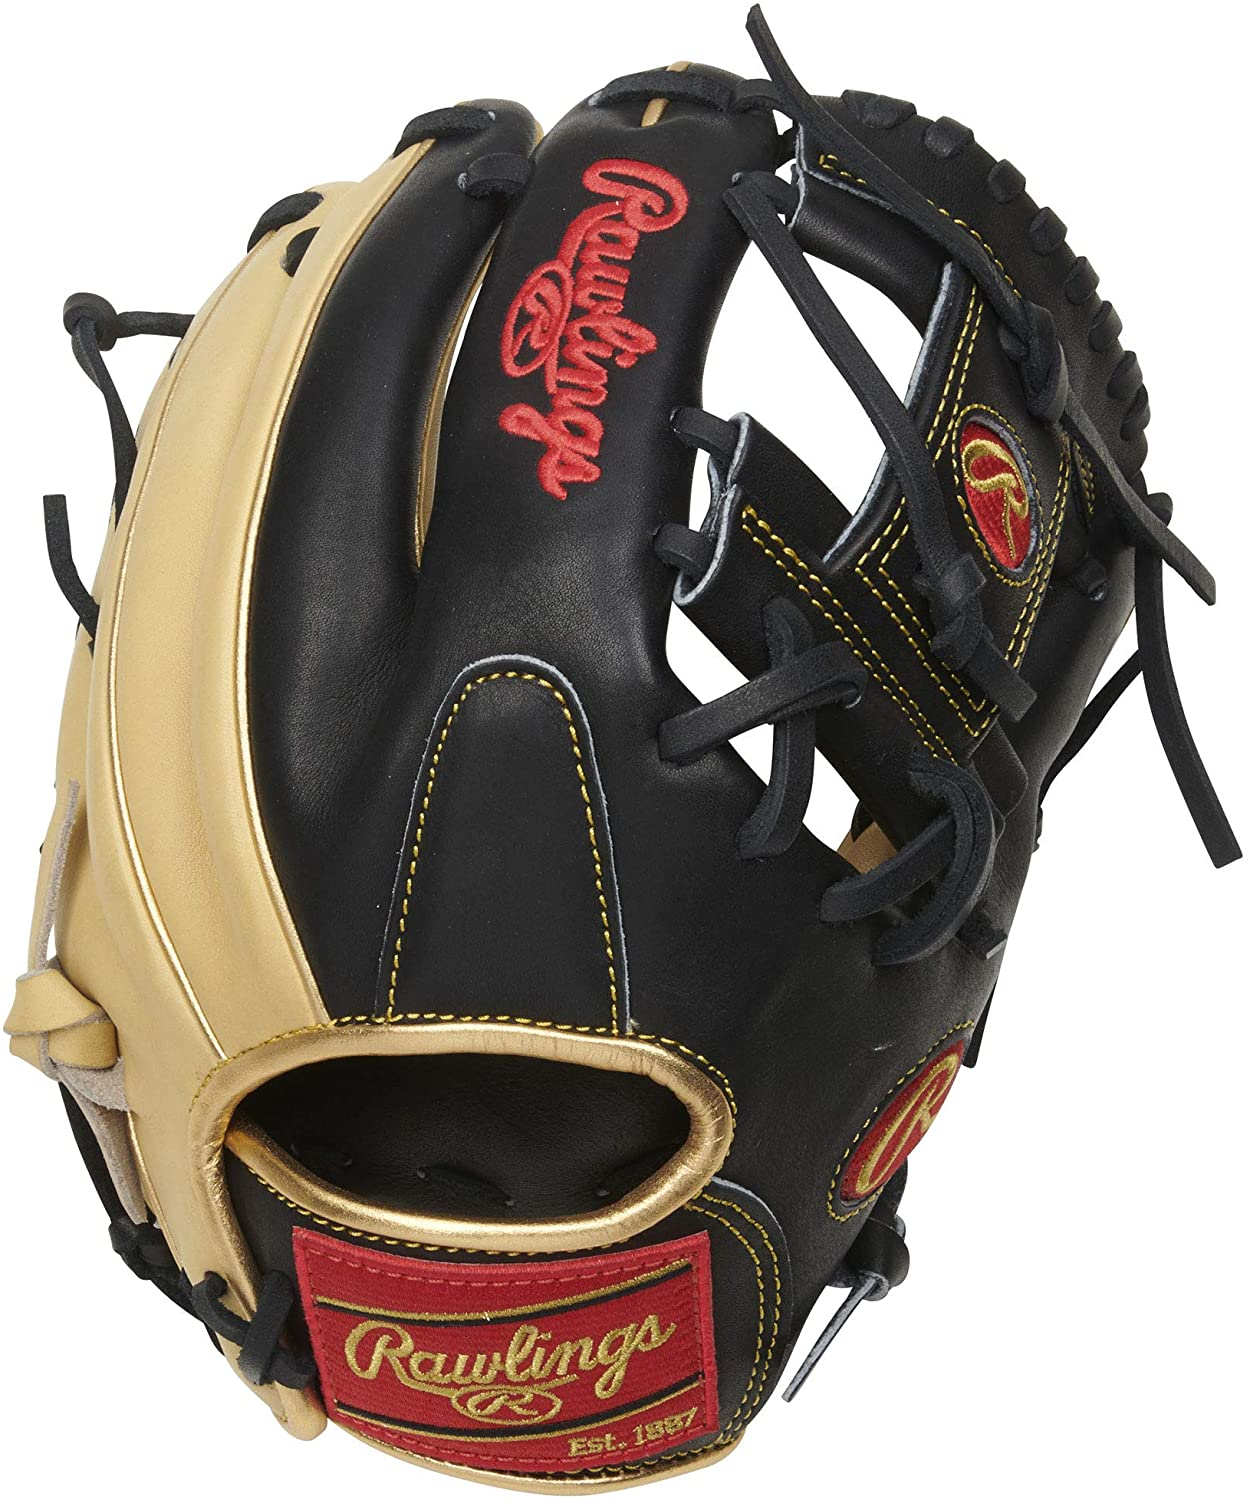 rawlings-heart-of-hide-11-75-r2g-baseball-glove-i-web-right-hand-throw PRORU204-2CB-RightHandThrow Rawlings 083321702563 <span>Rawlings all new Heart of the Hide R2G gloves feature little